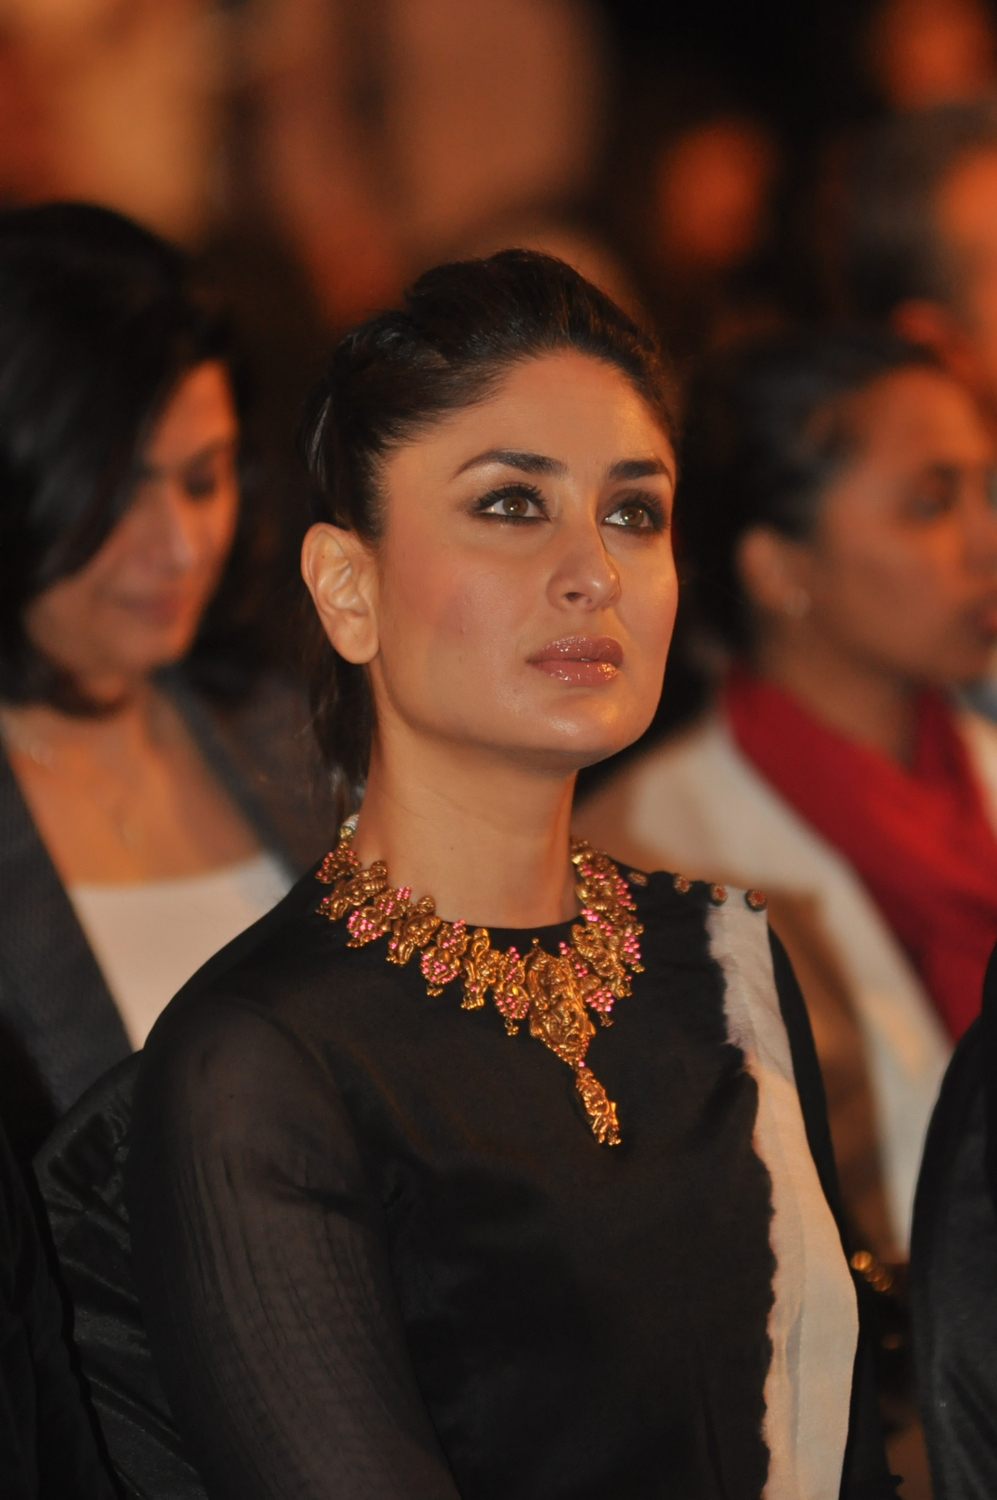 kareena kapoor in temple jewellery neacklace